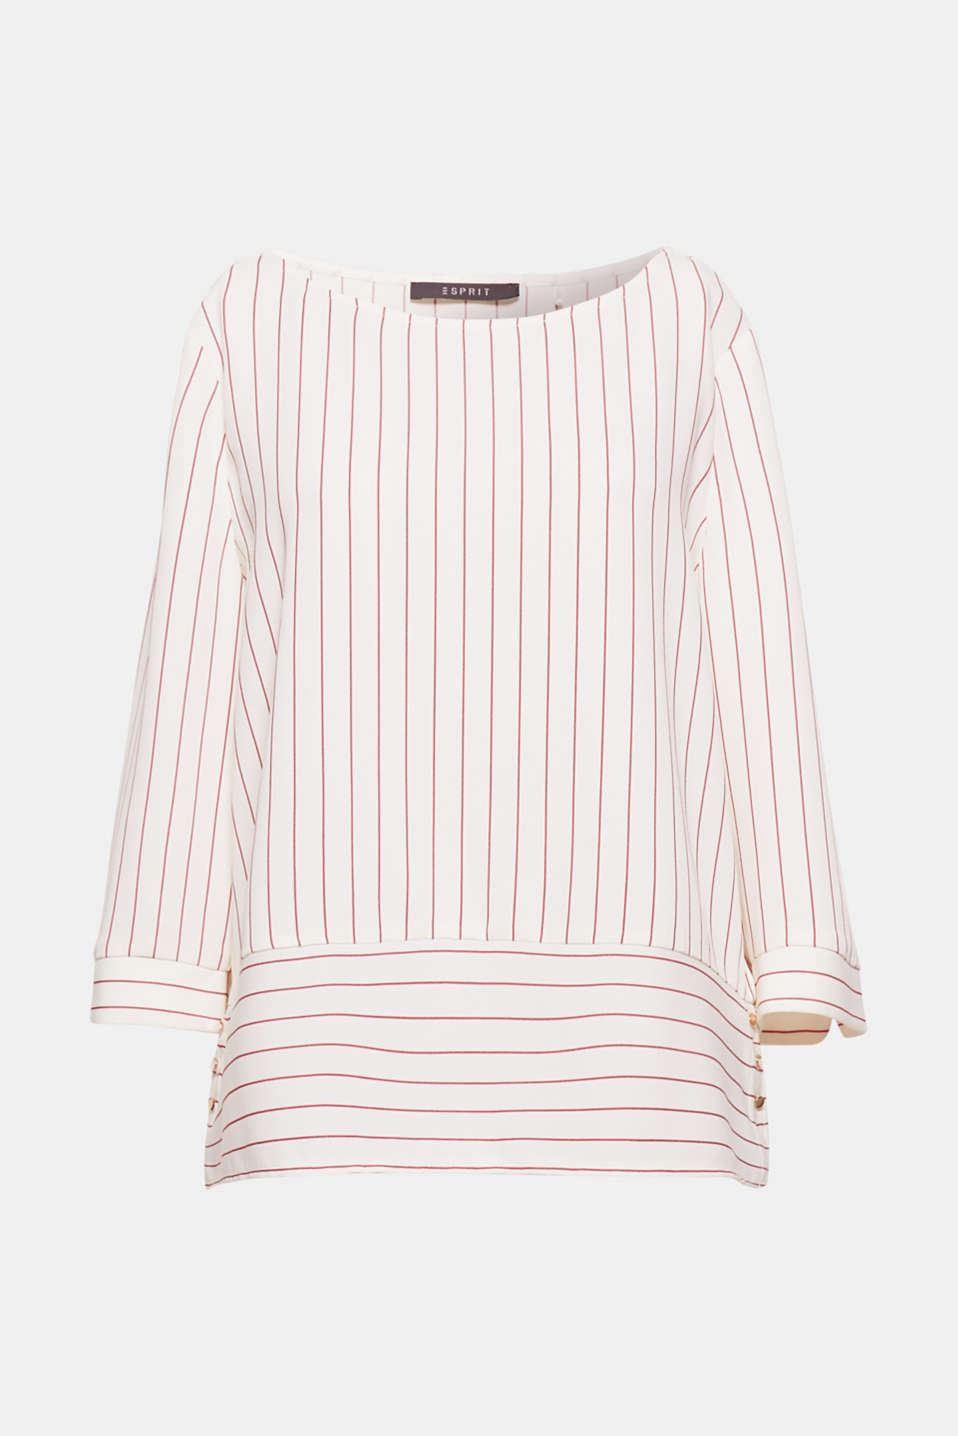 Modernity is in the detail: the wide, contrasting striped hem creates a special accent on this flowing blouse!